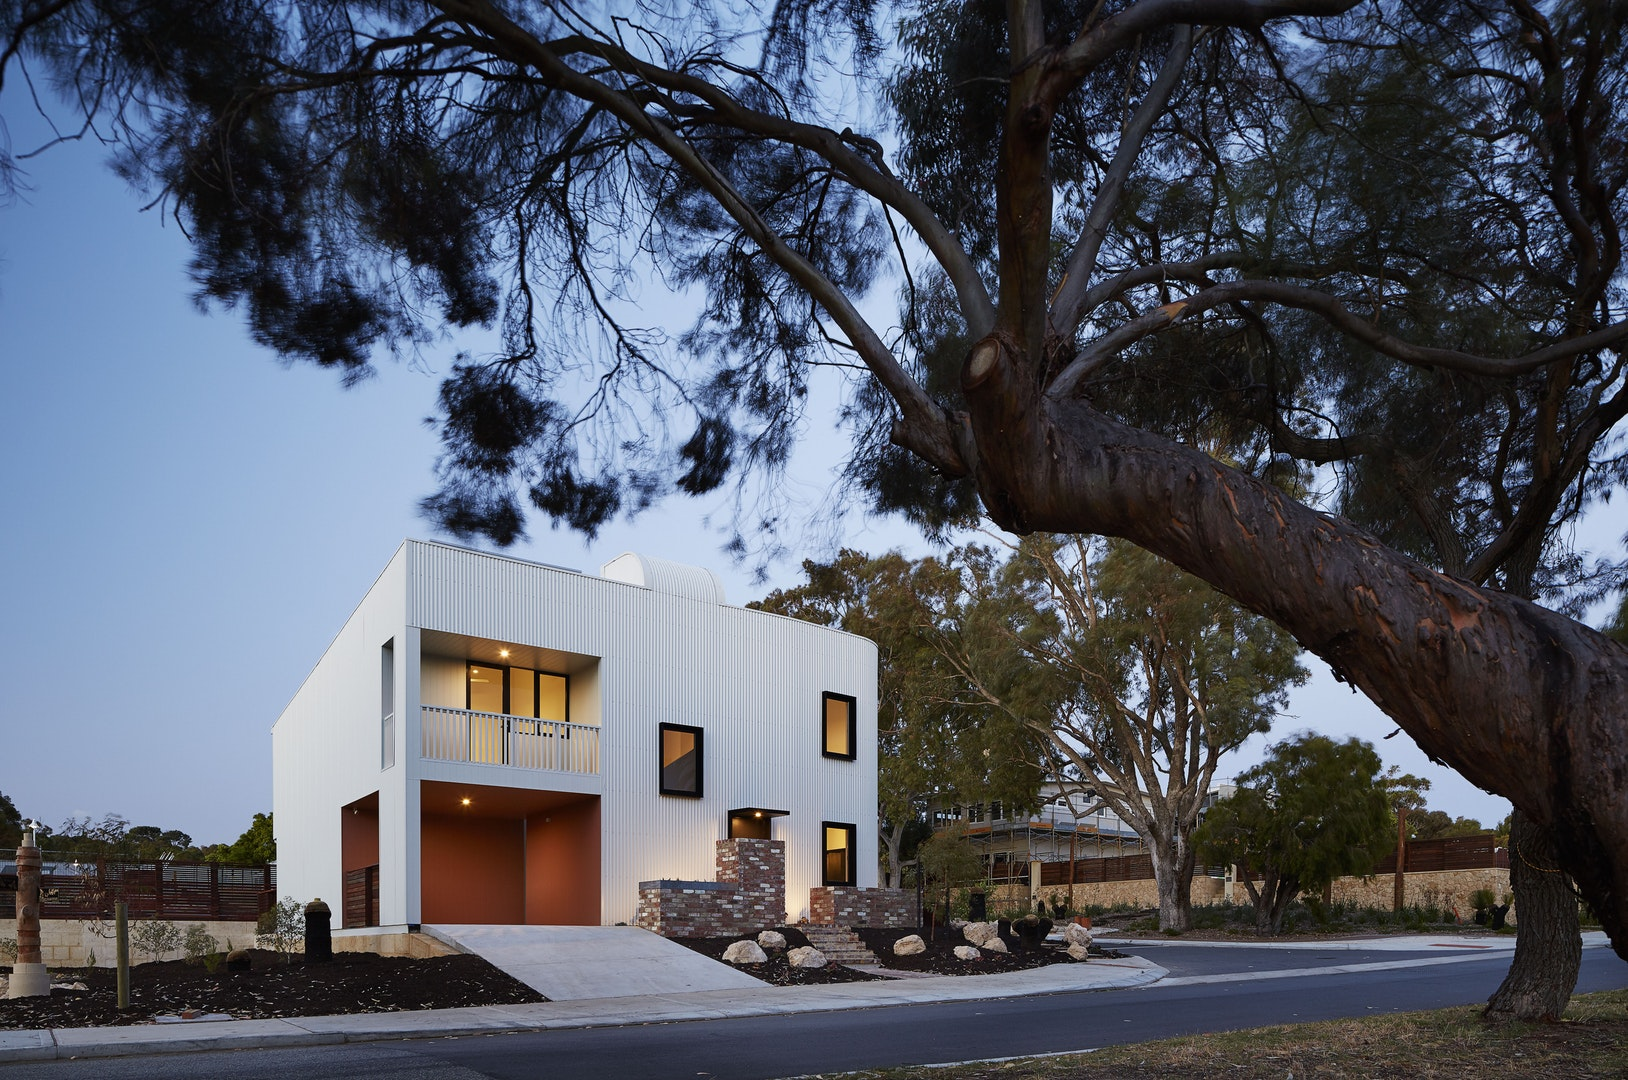 Residential Houses – Multi-residential – Gen Y house by David Barr Architect. Photo by Robert Frith.